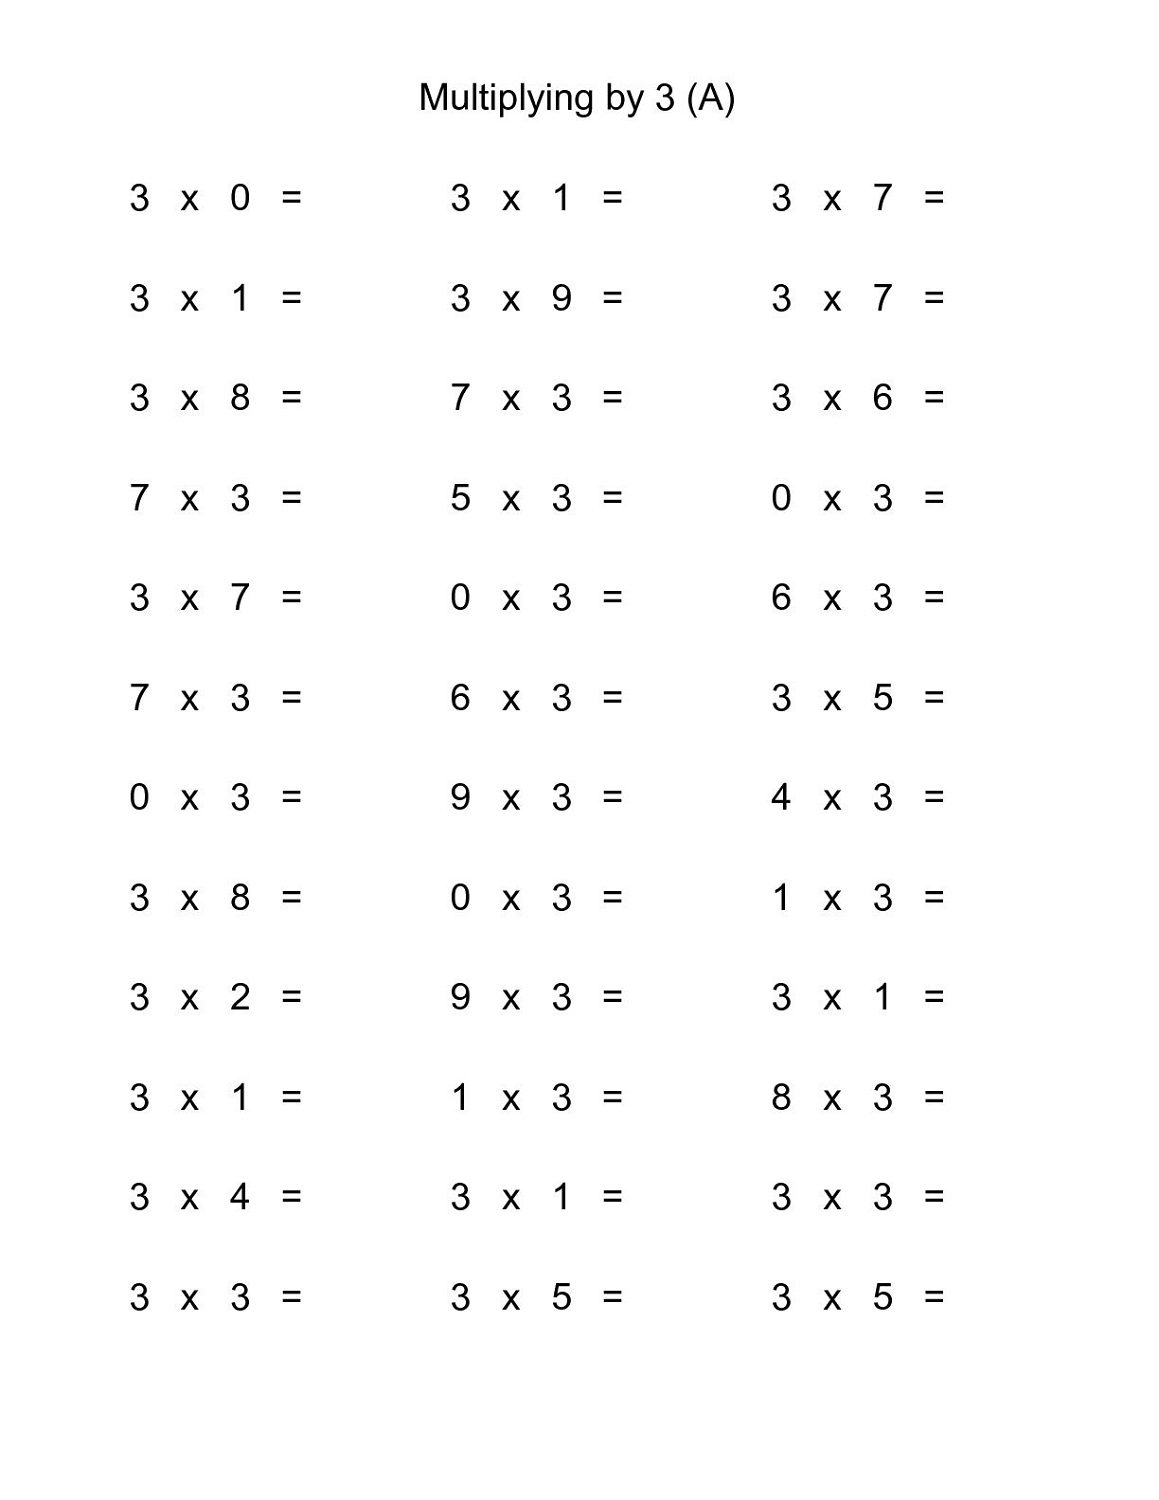 multiply-by-3-worksheets-practice